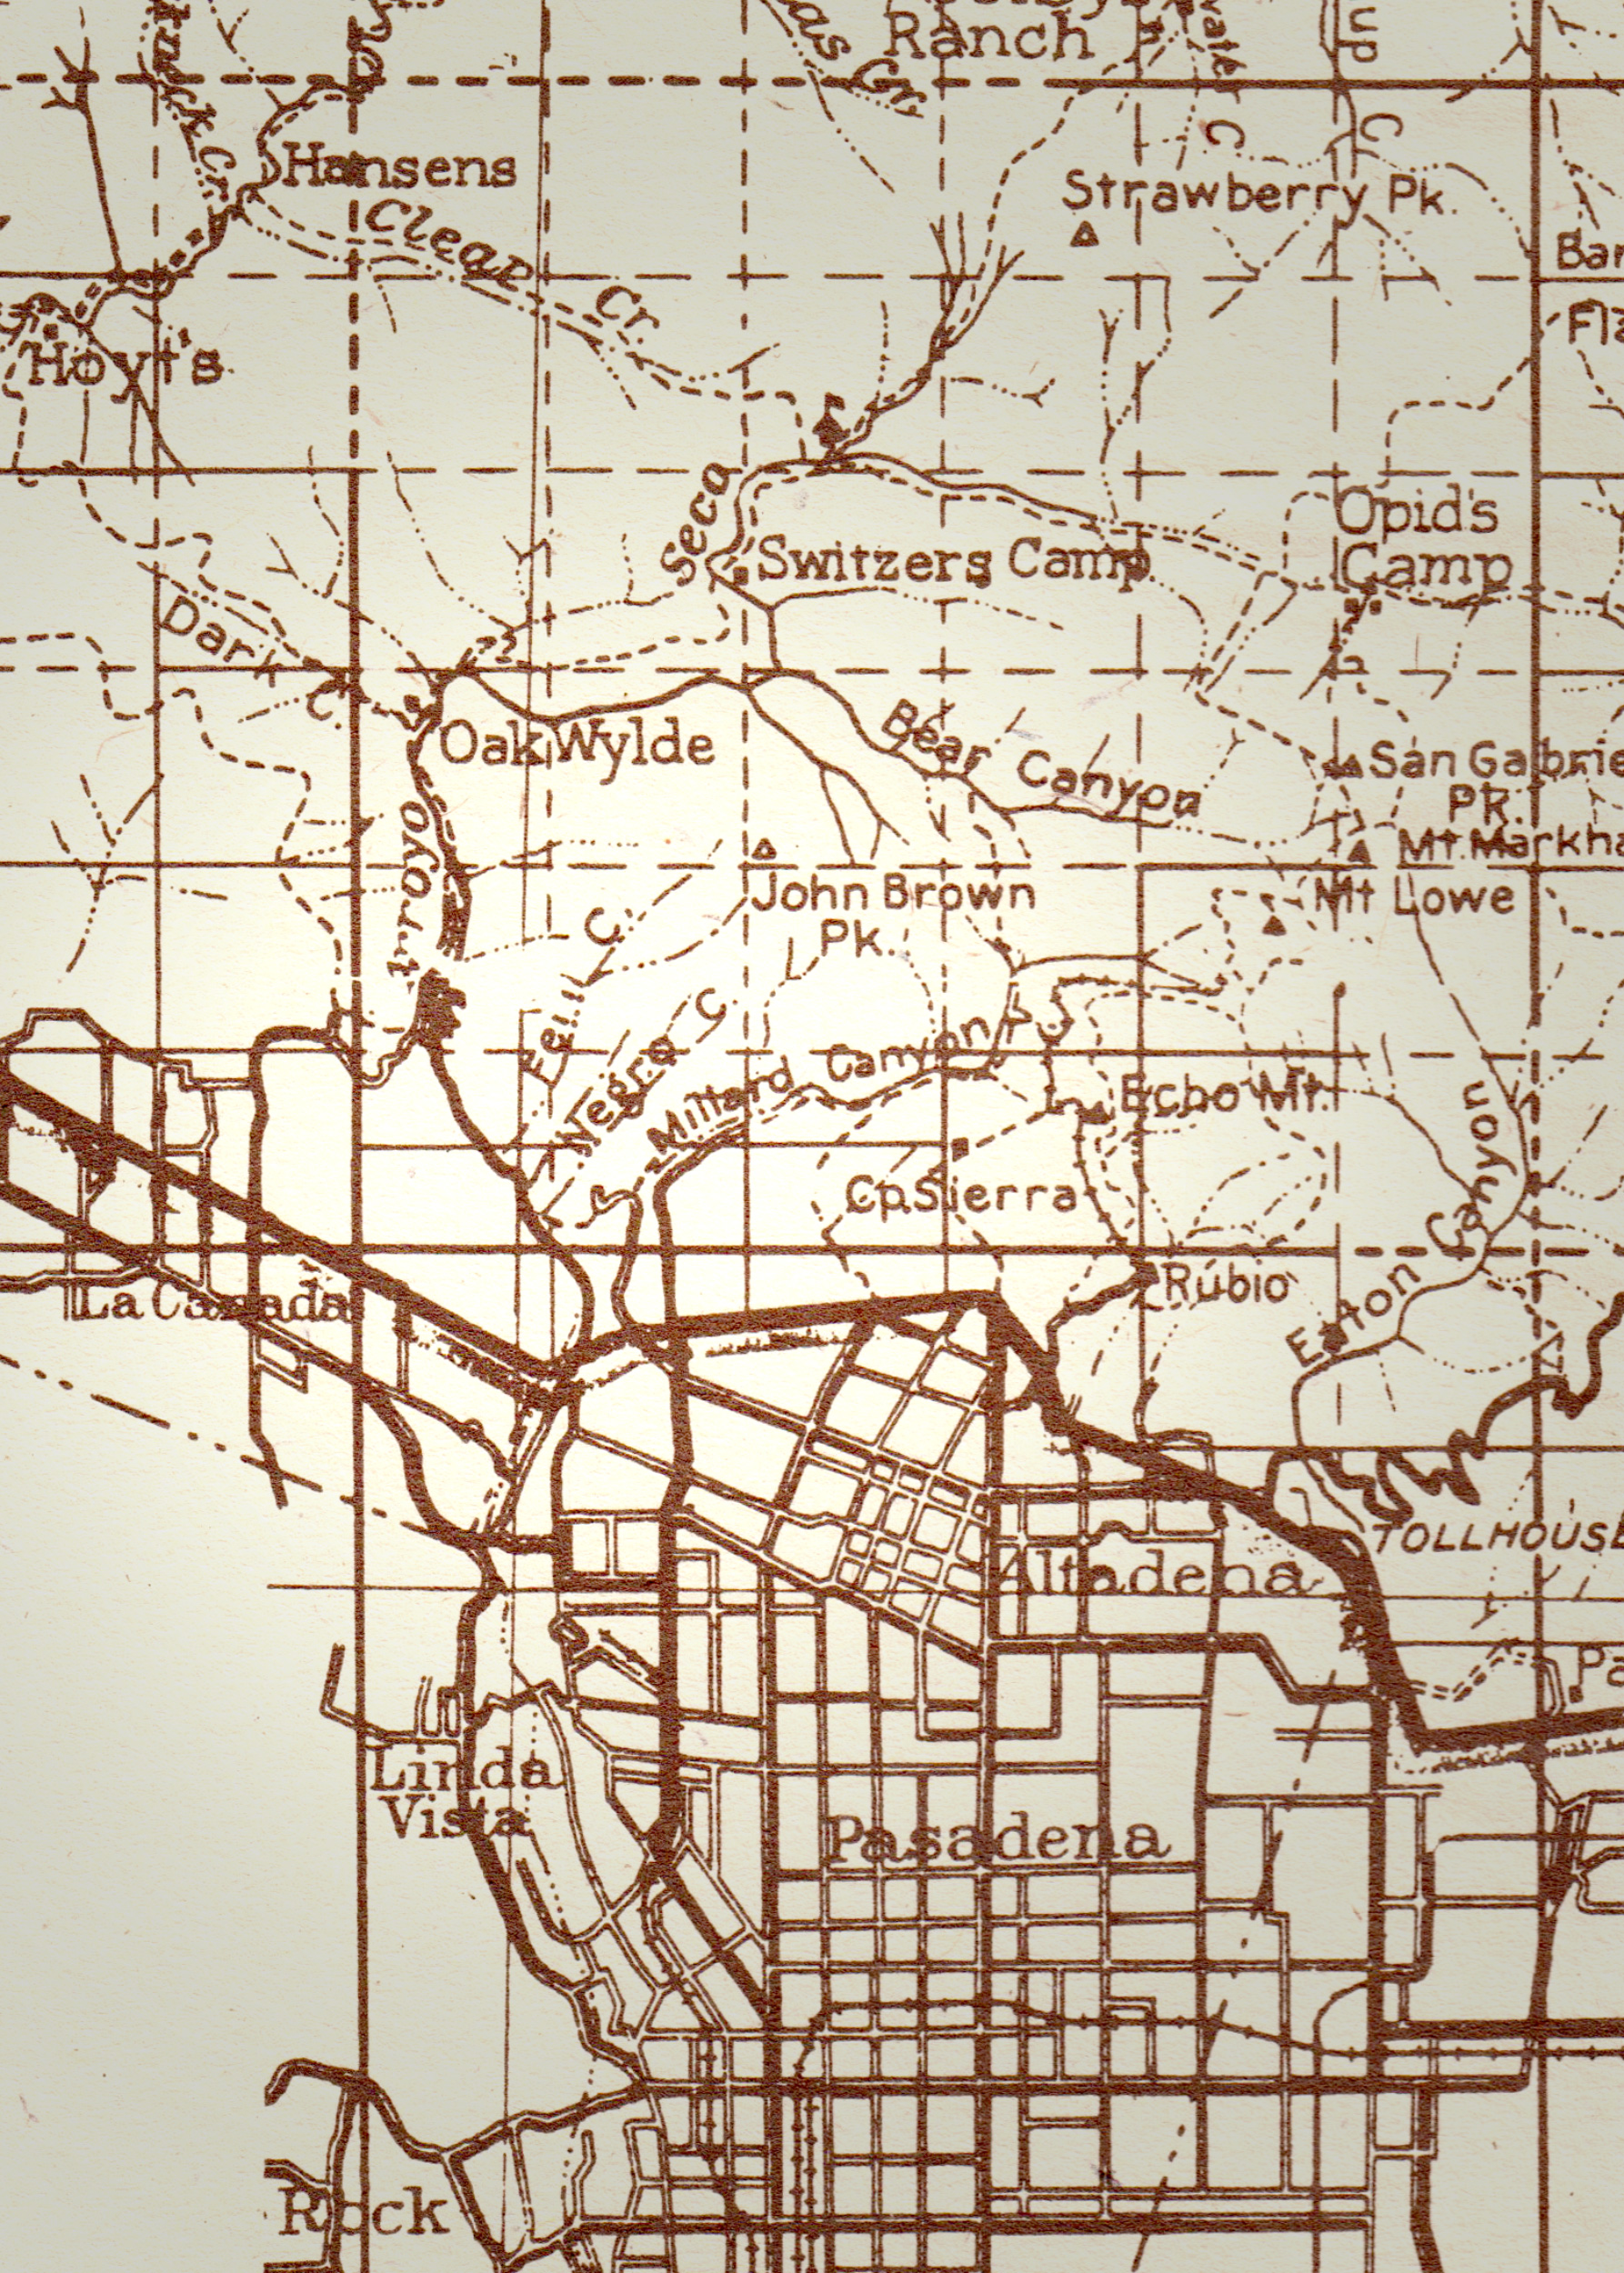 On a 1920 Angeles National Forest map, the area Robert Owens homesteaded is called Negro Canyon